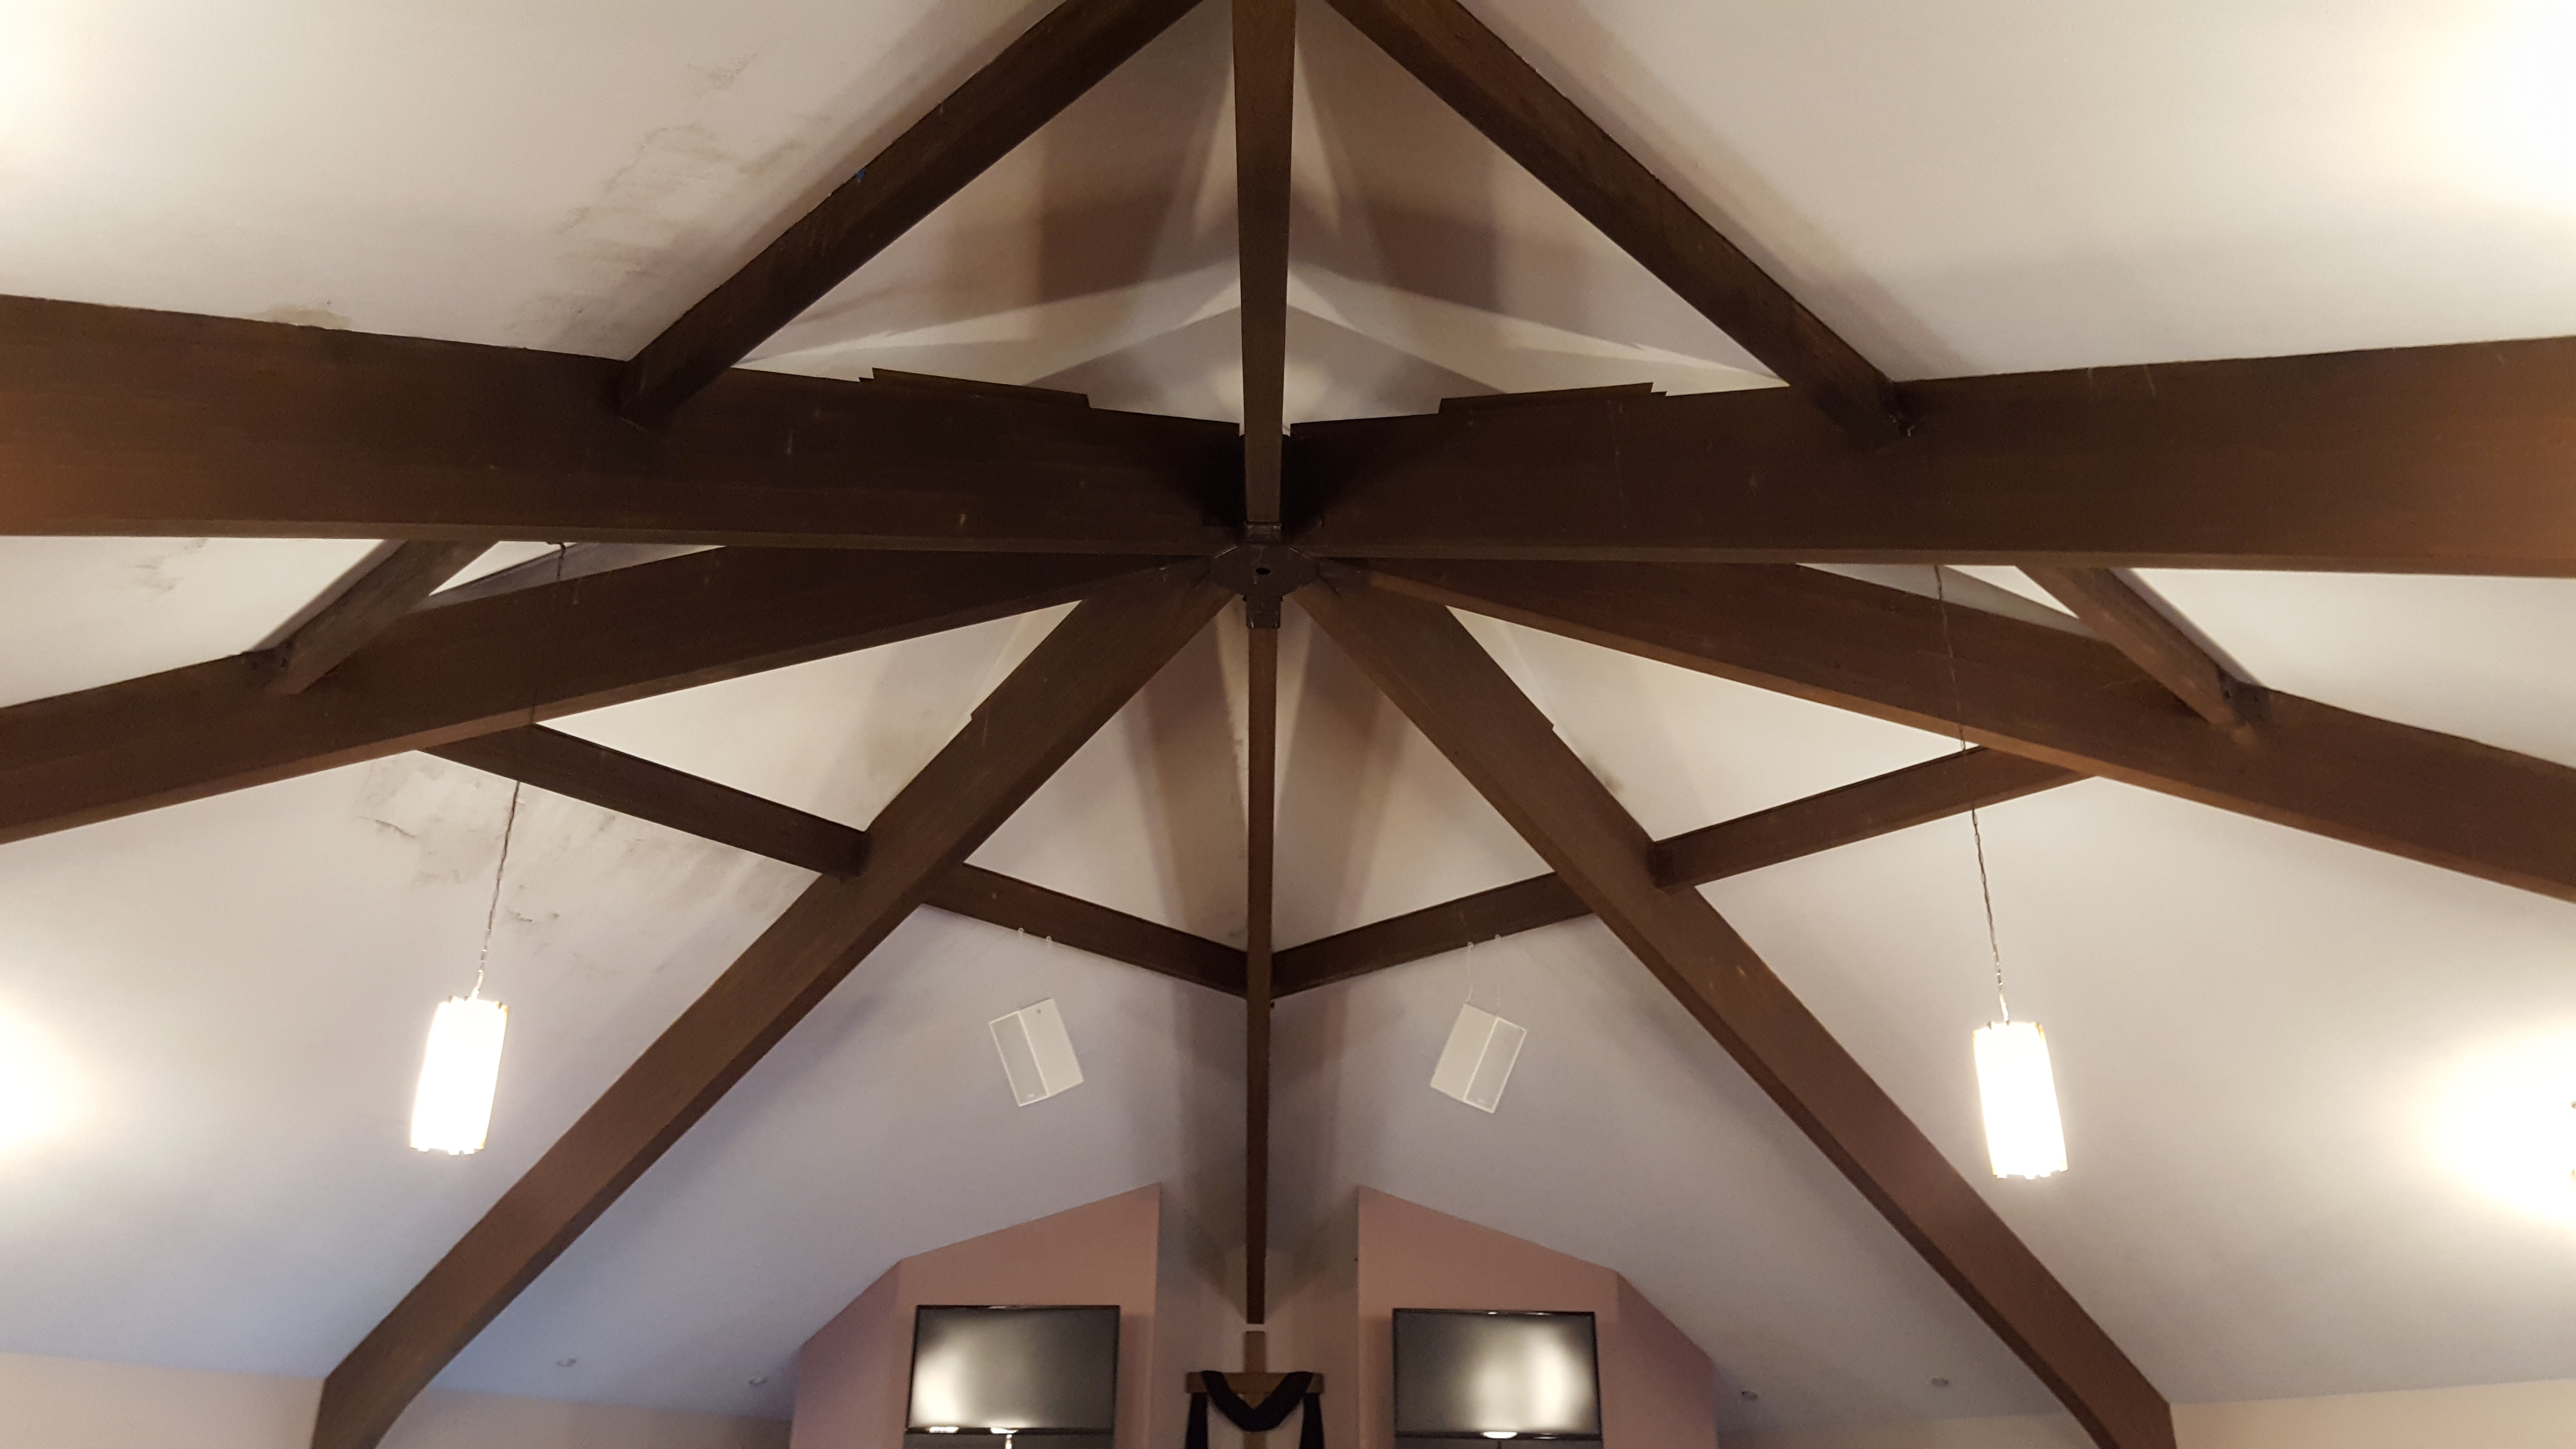 mold removal required along ceiling beams of a church